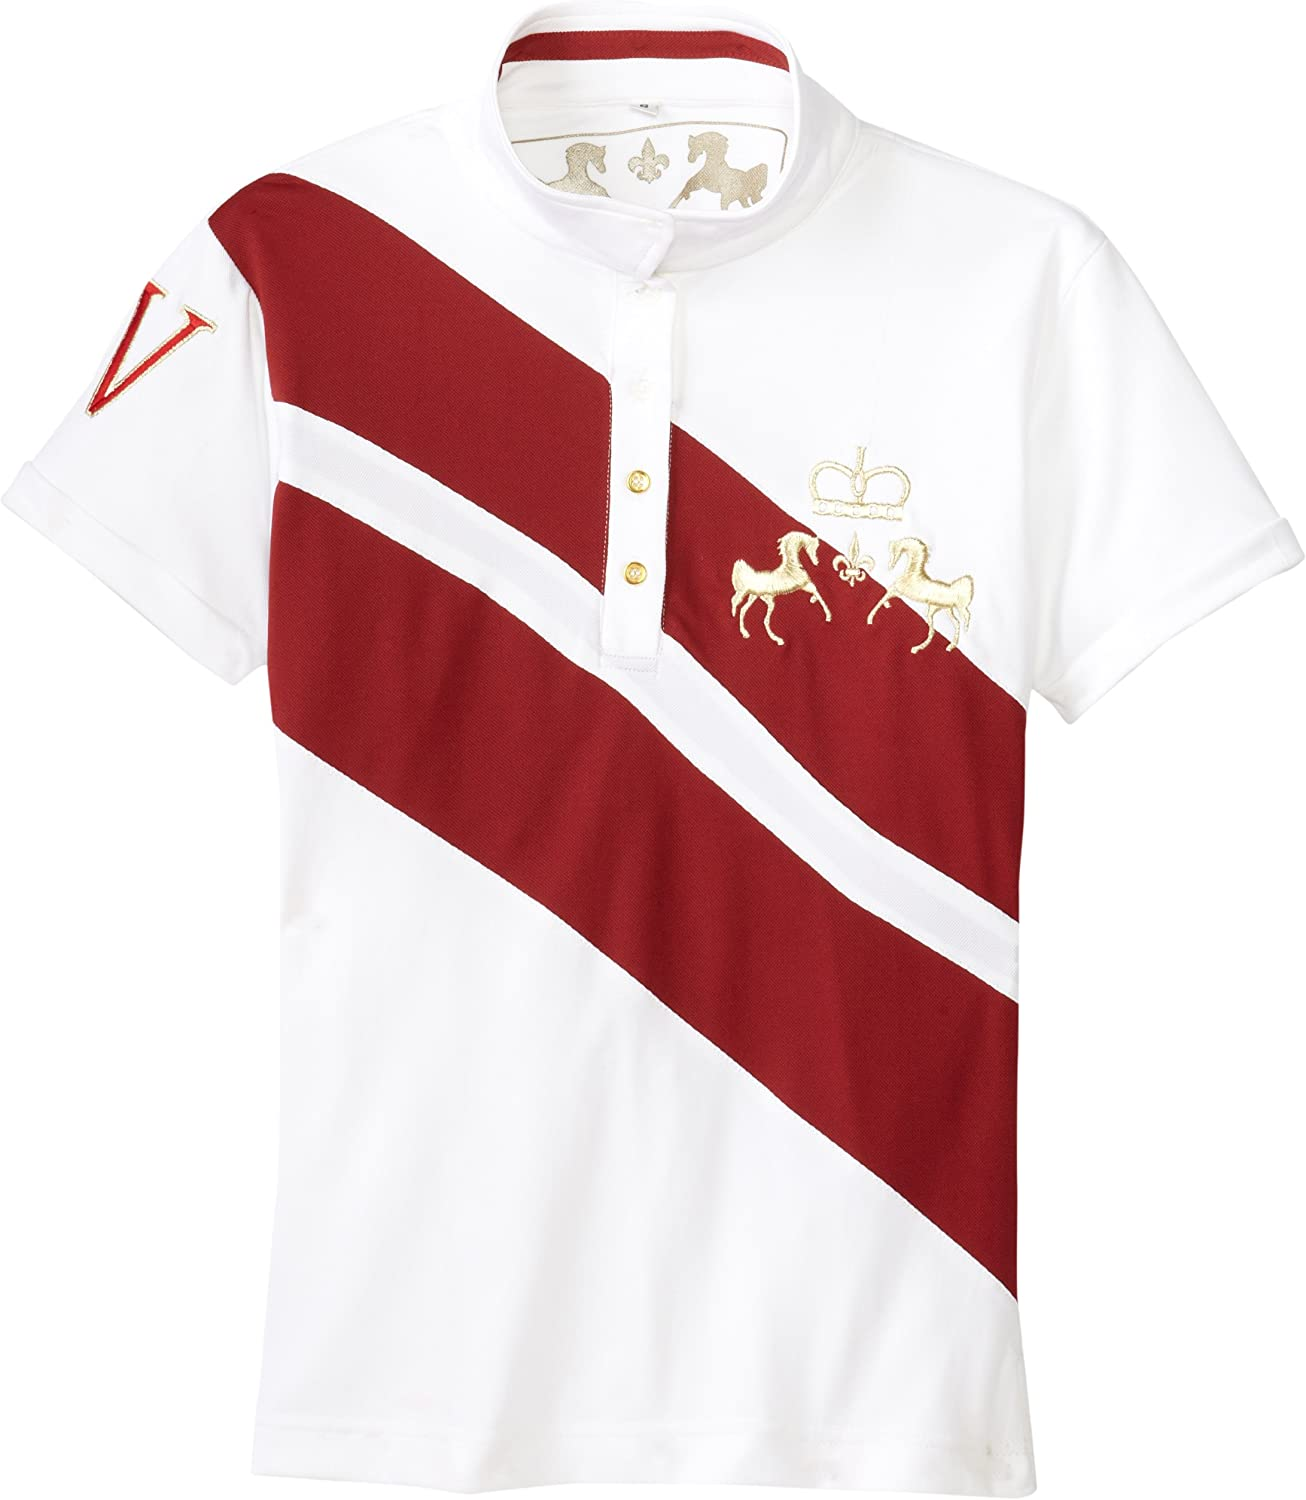 Equine Couture Women's XPress Short Sleeve Polo, White EC Red, 3X